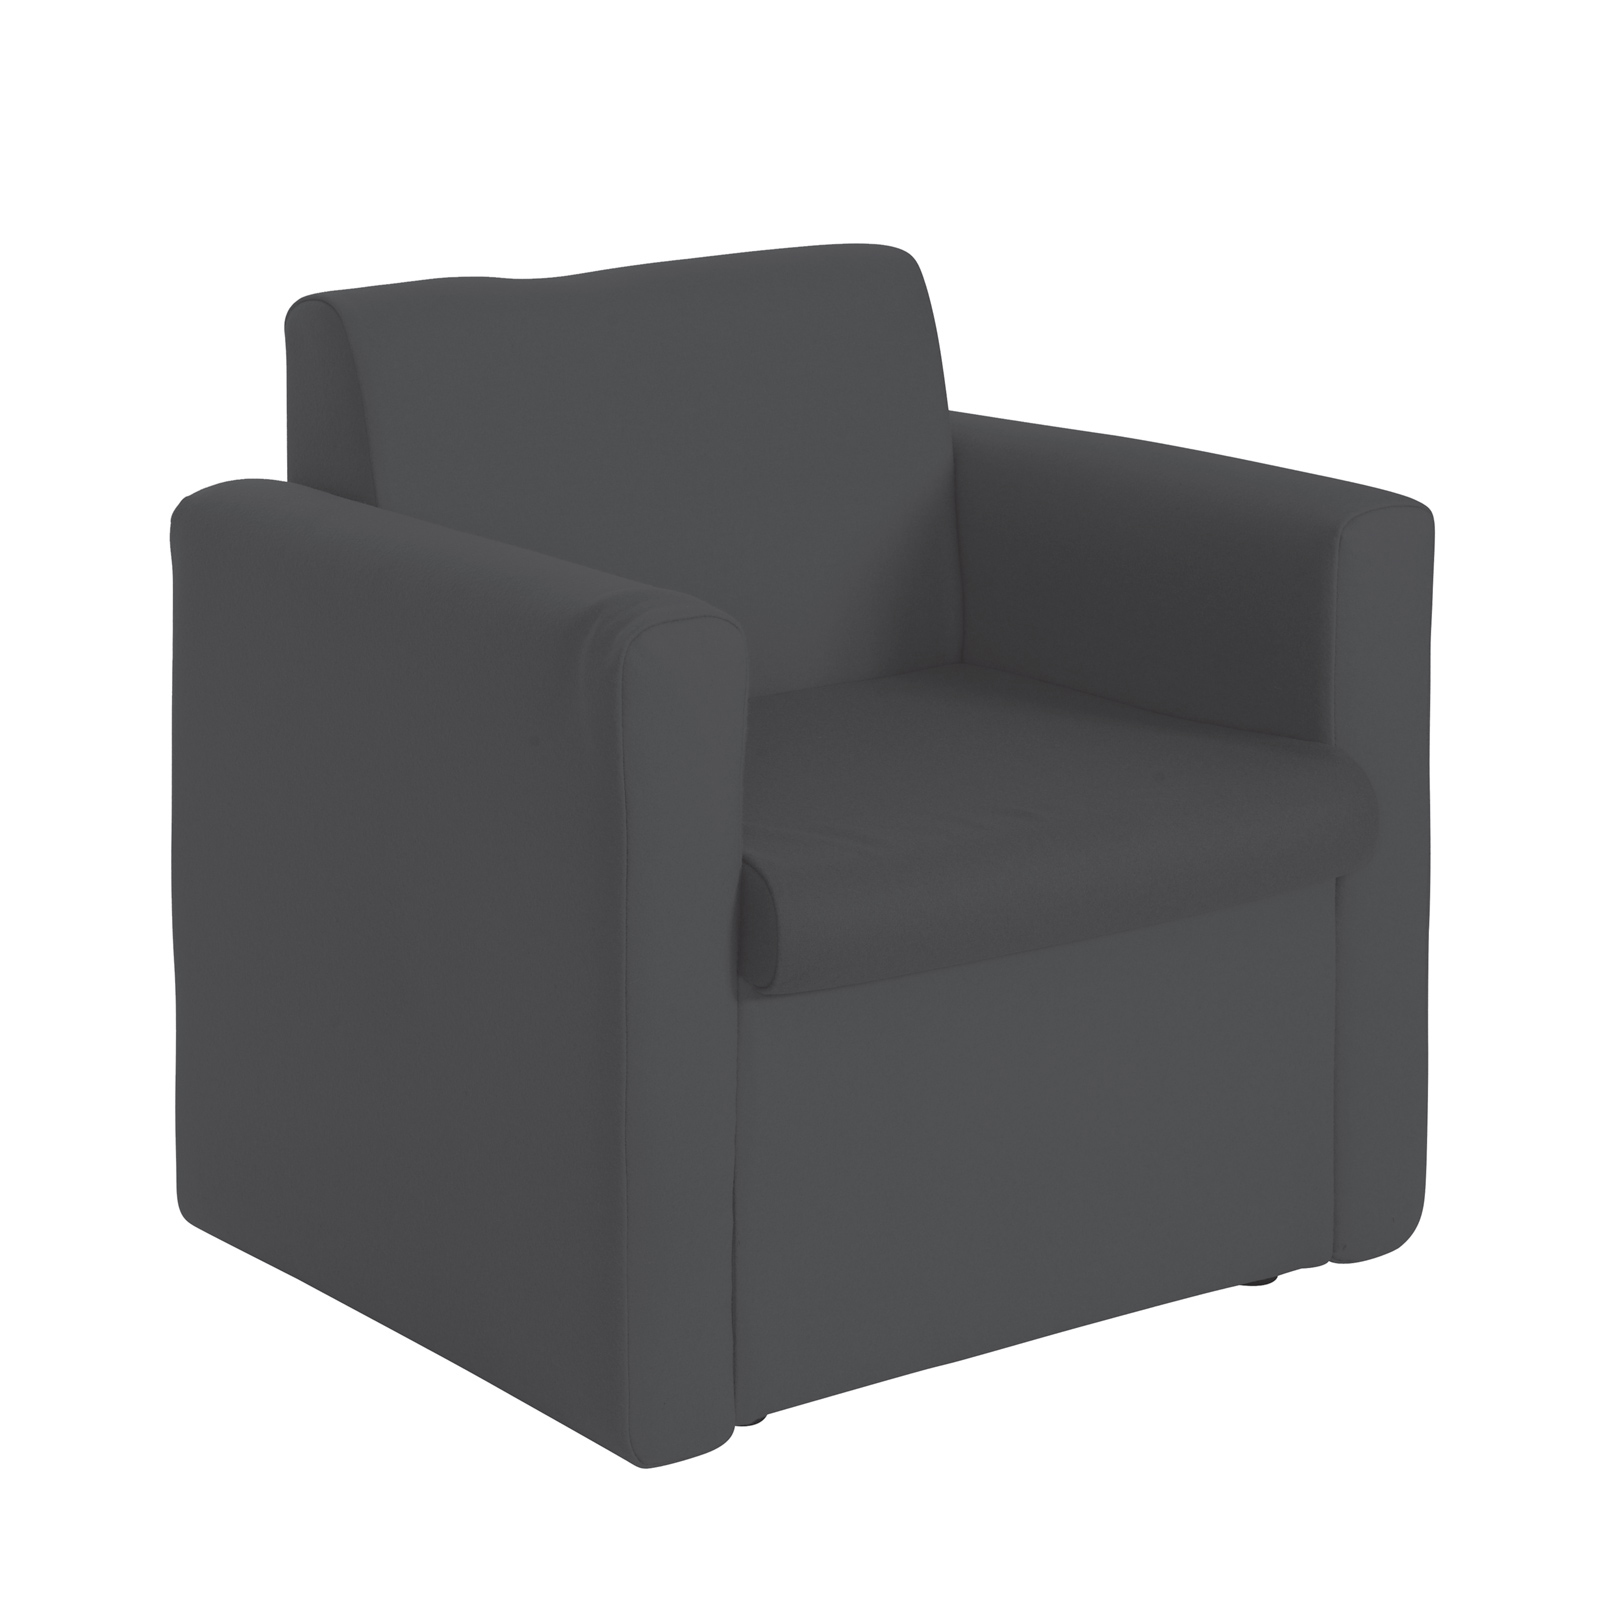 Alto modular reception seating armchair - charcoal